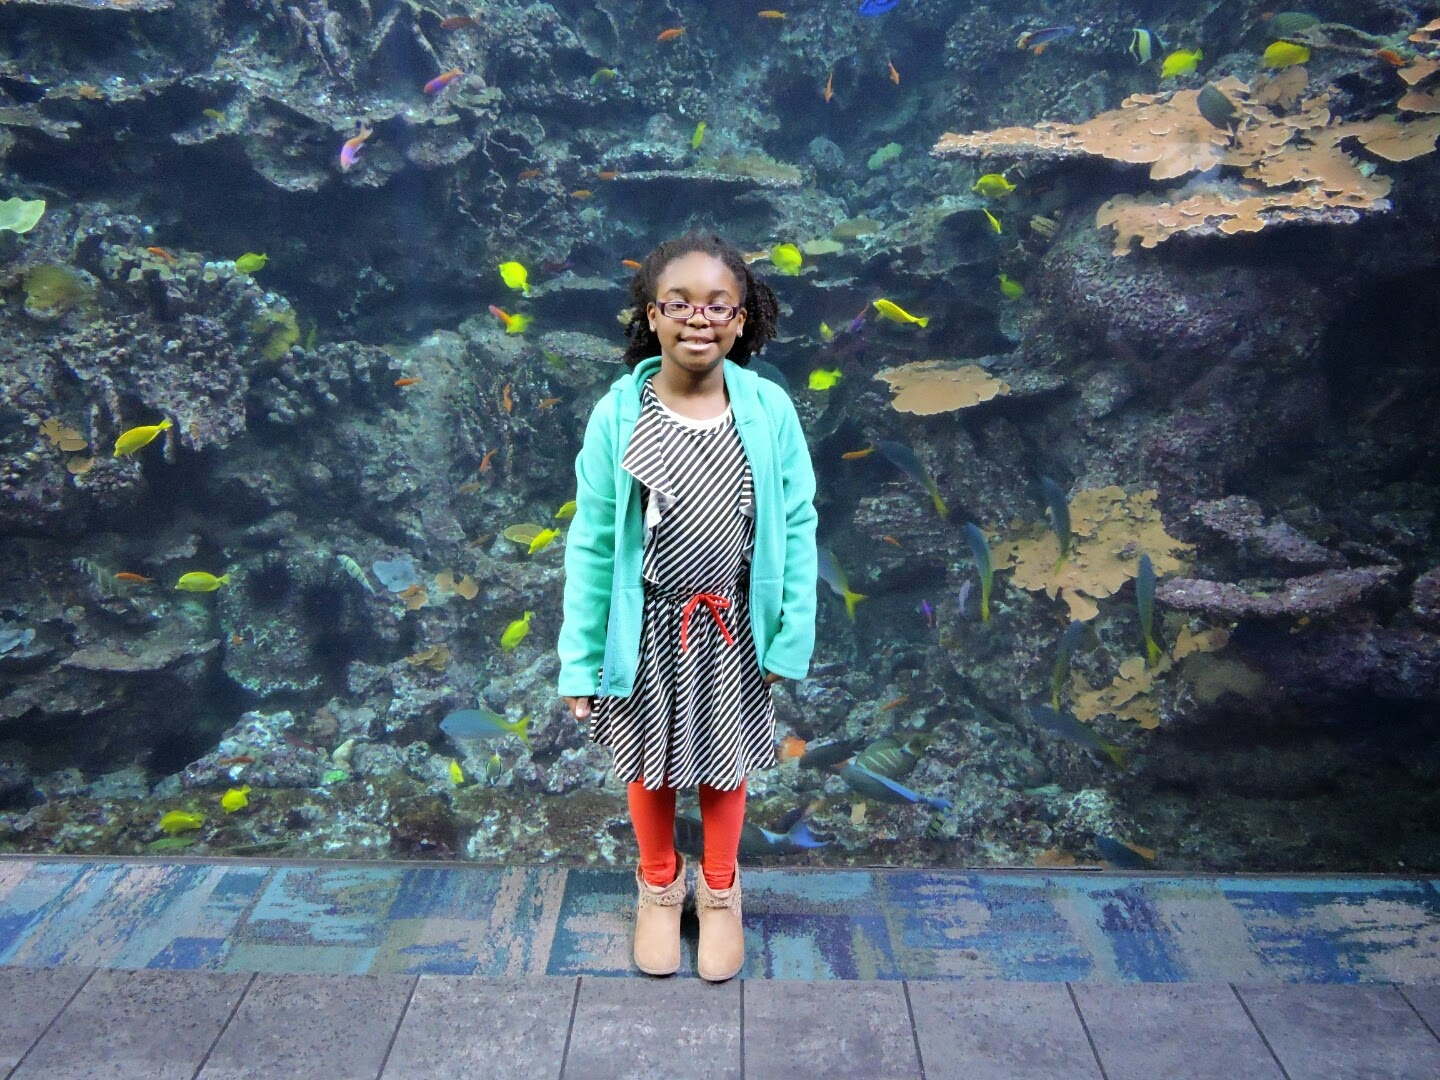 Top 5 Things To Do at Georgia Aquarium This Spring Break  via www.productreviewmom.com